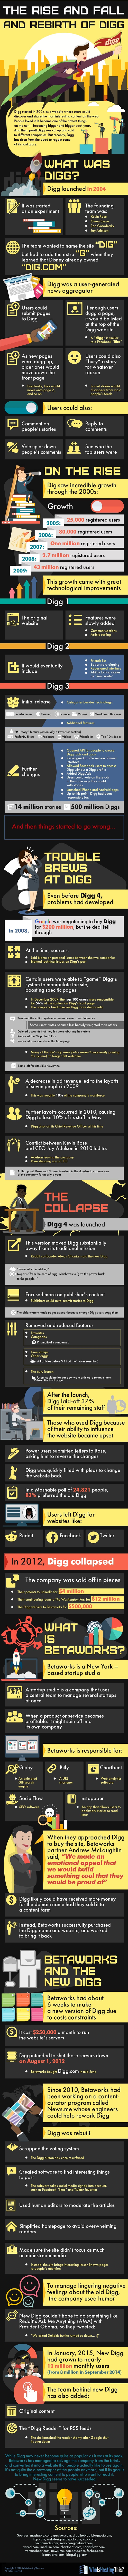 The Rise and Fall and Rebirth of Digg -  #Infographic